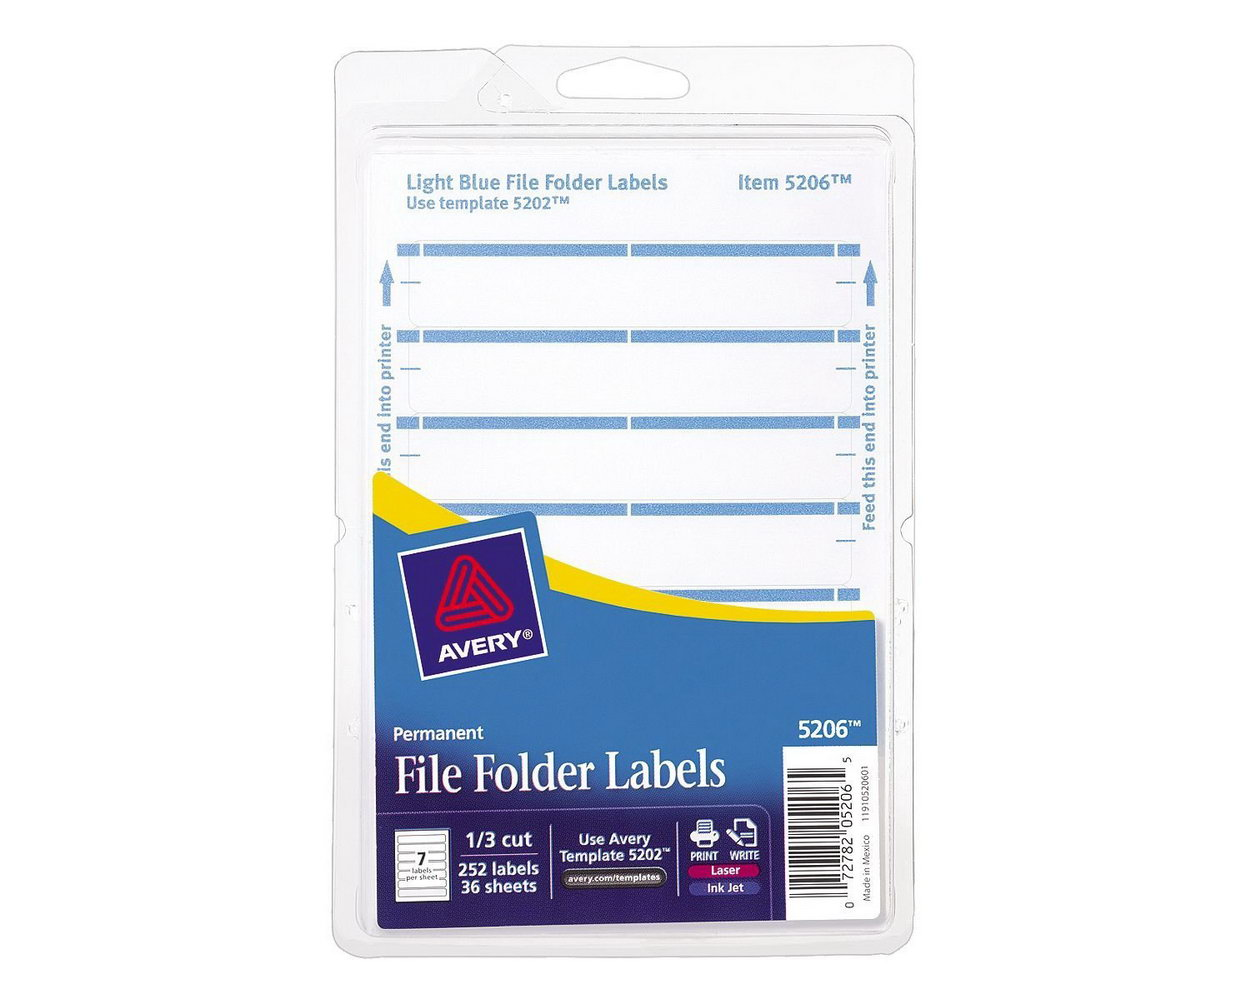 Avery File Folder Label Template 8593